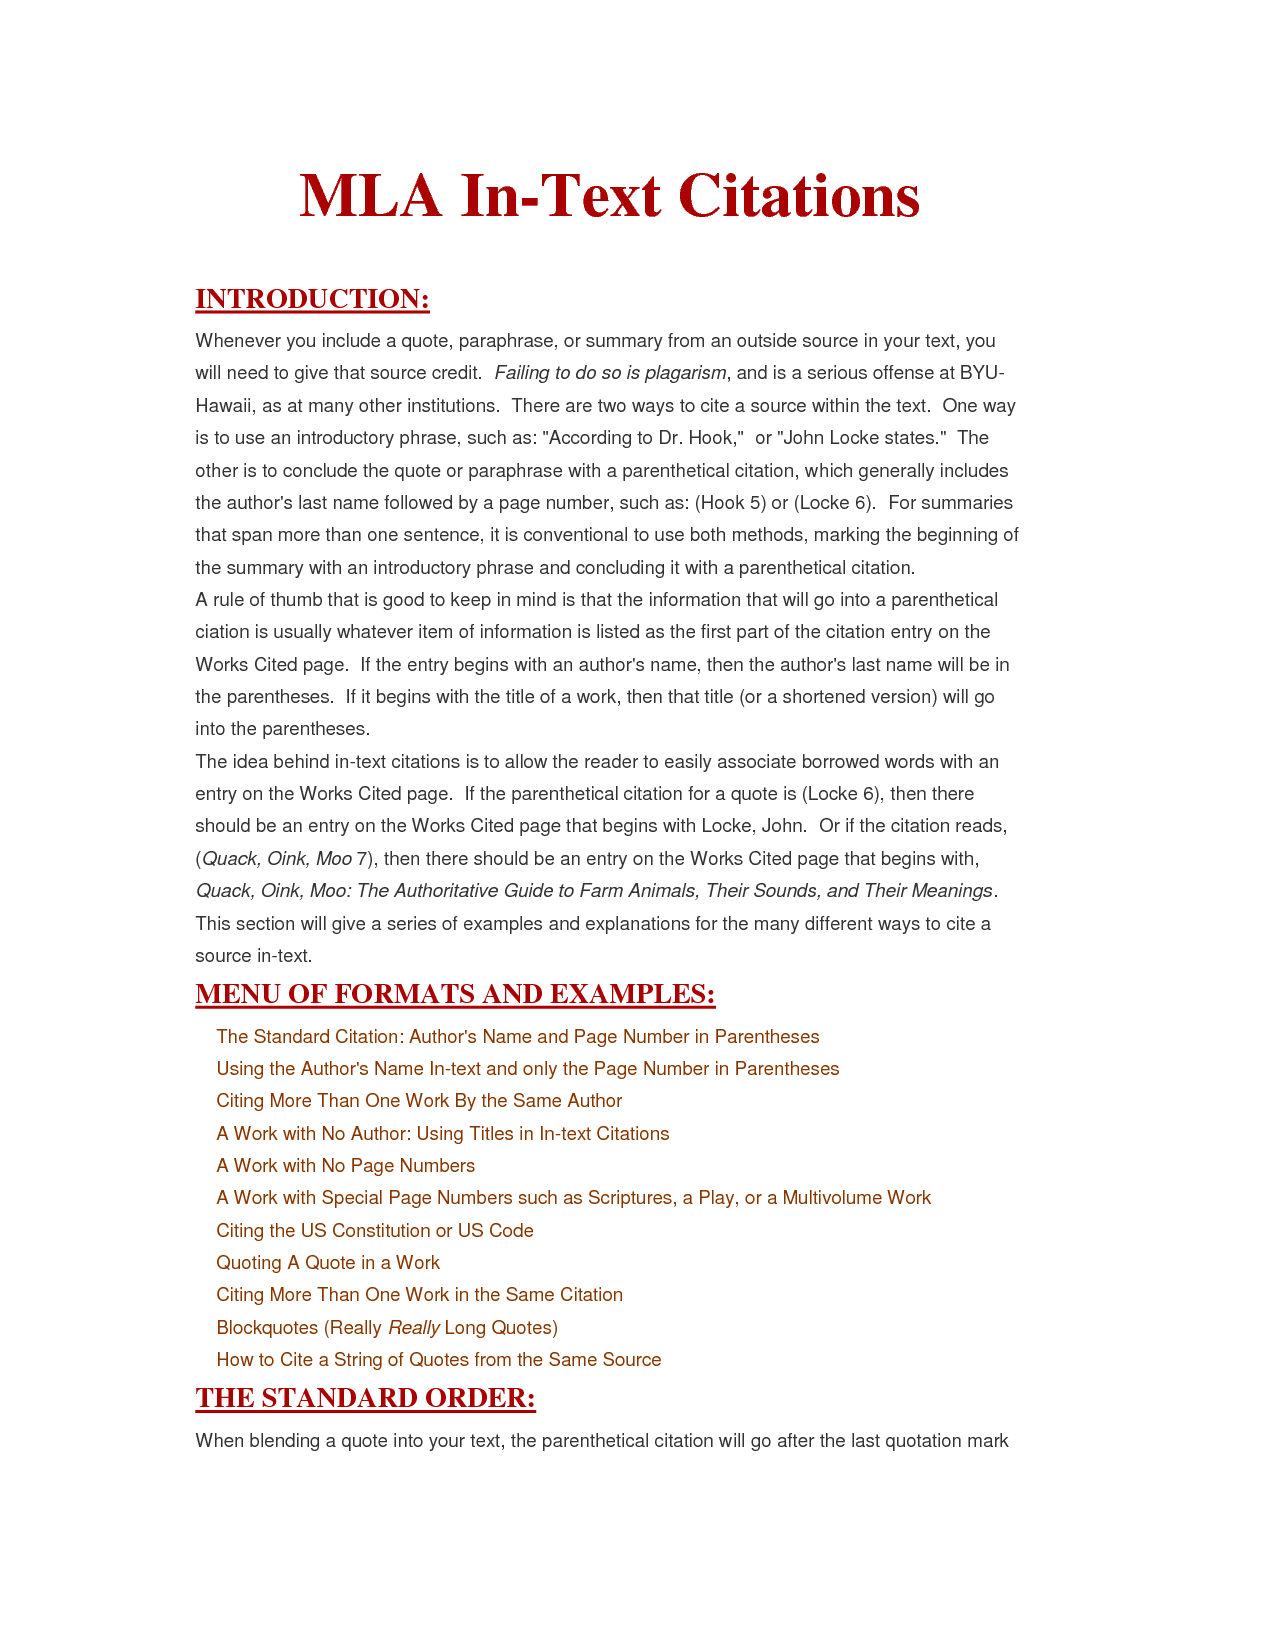 mla format how to cite a book in the essay Use the following template to cite a artwork using the mla citation style for help with other source types, like books, pdfs, or websites, check out our other guides.